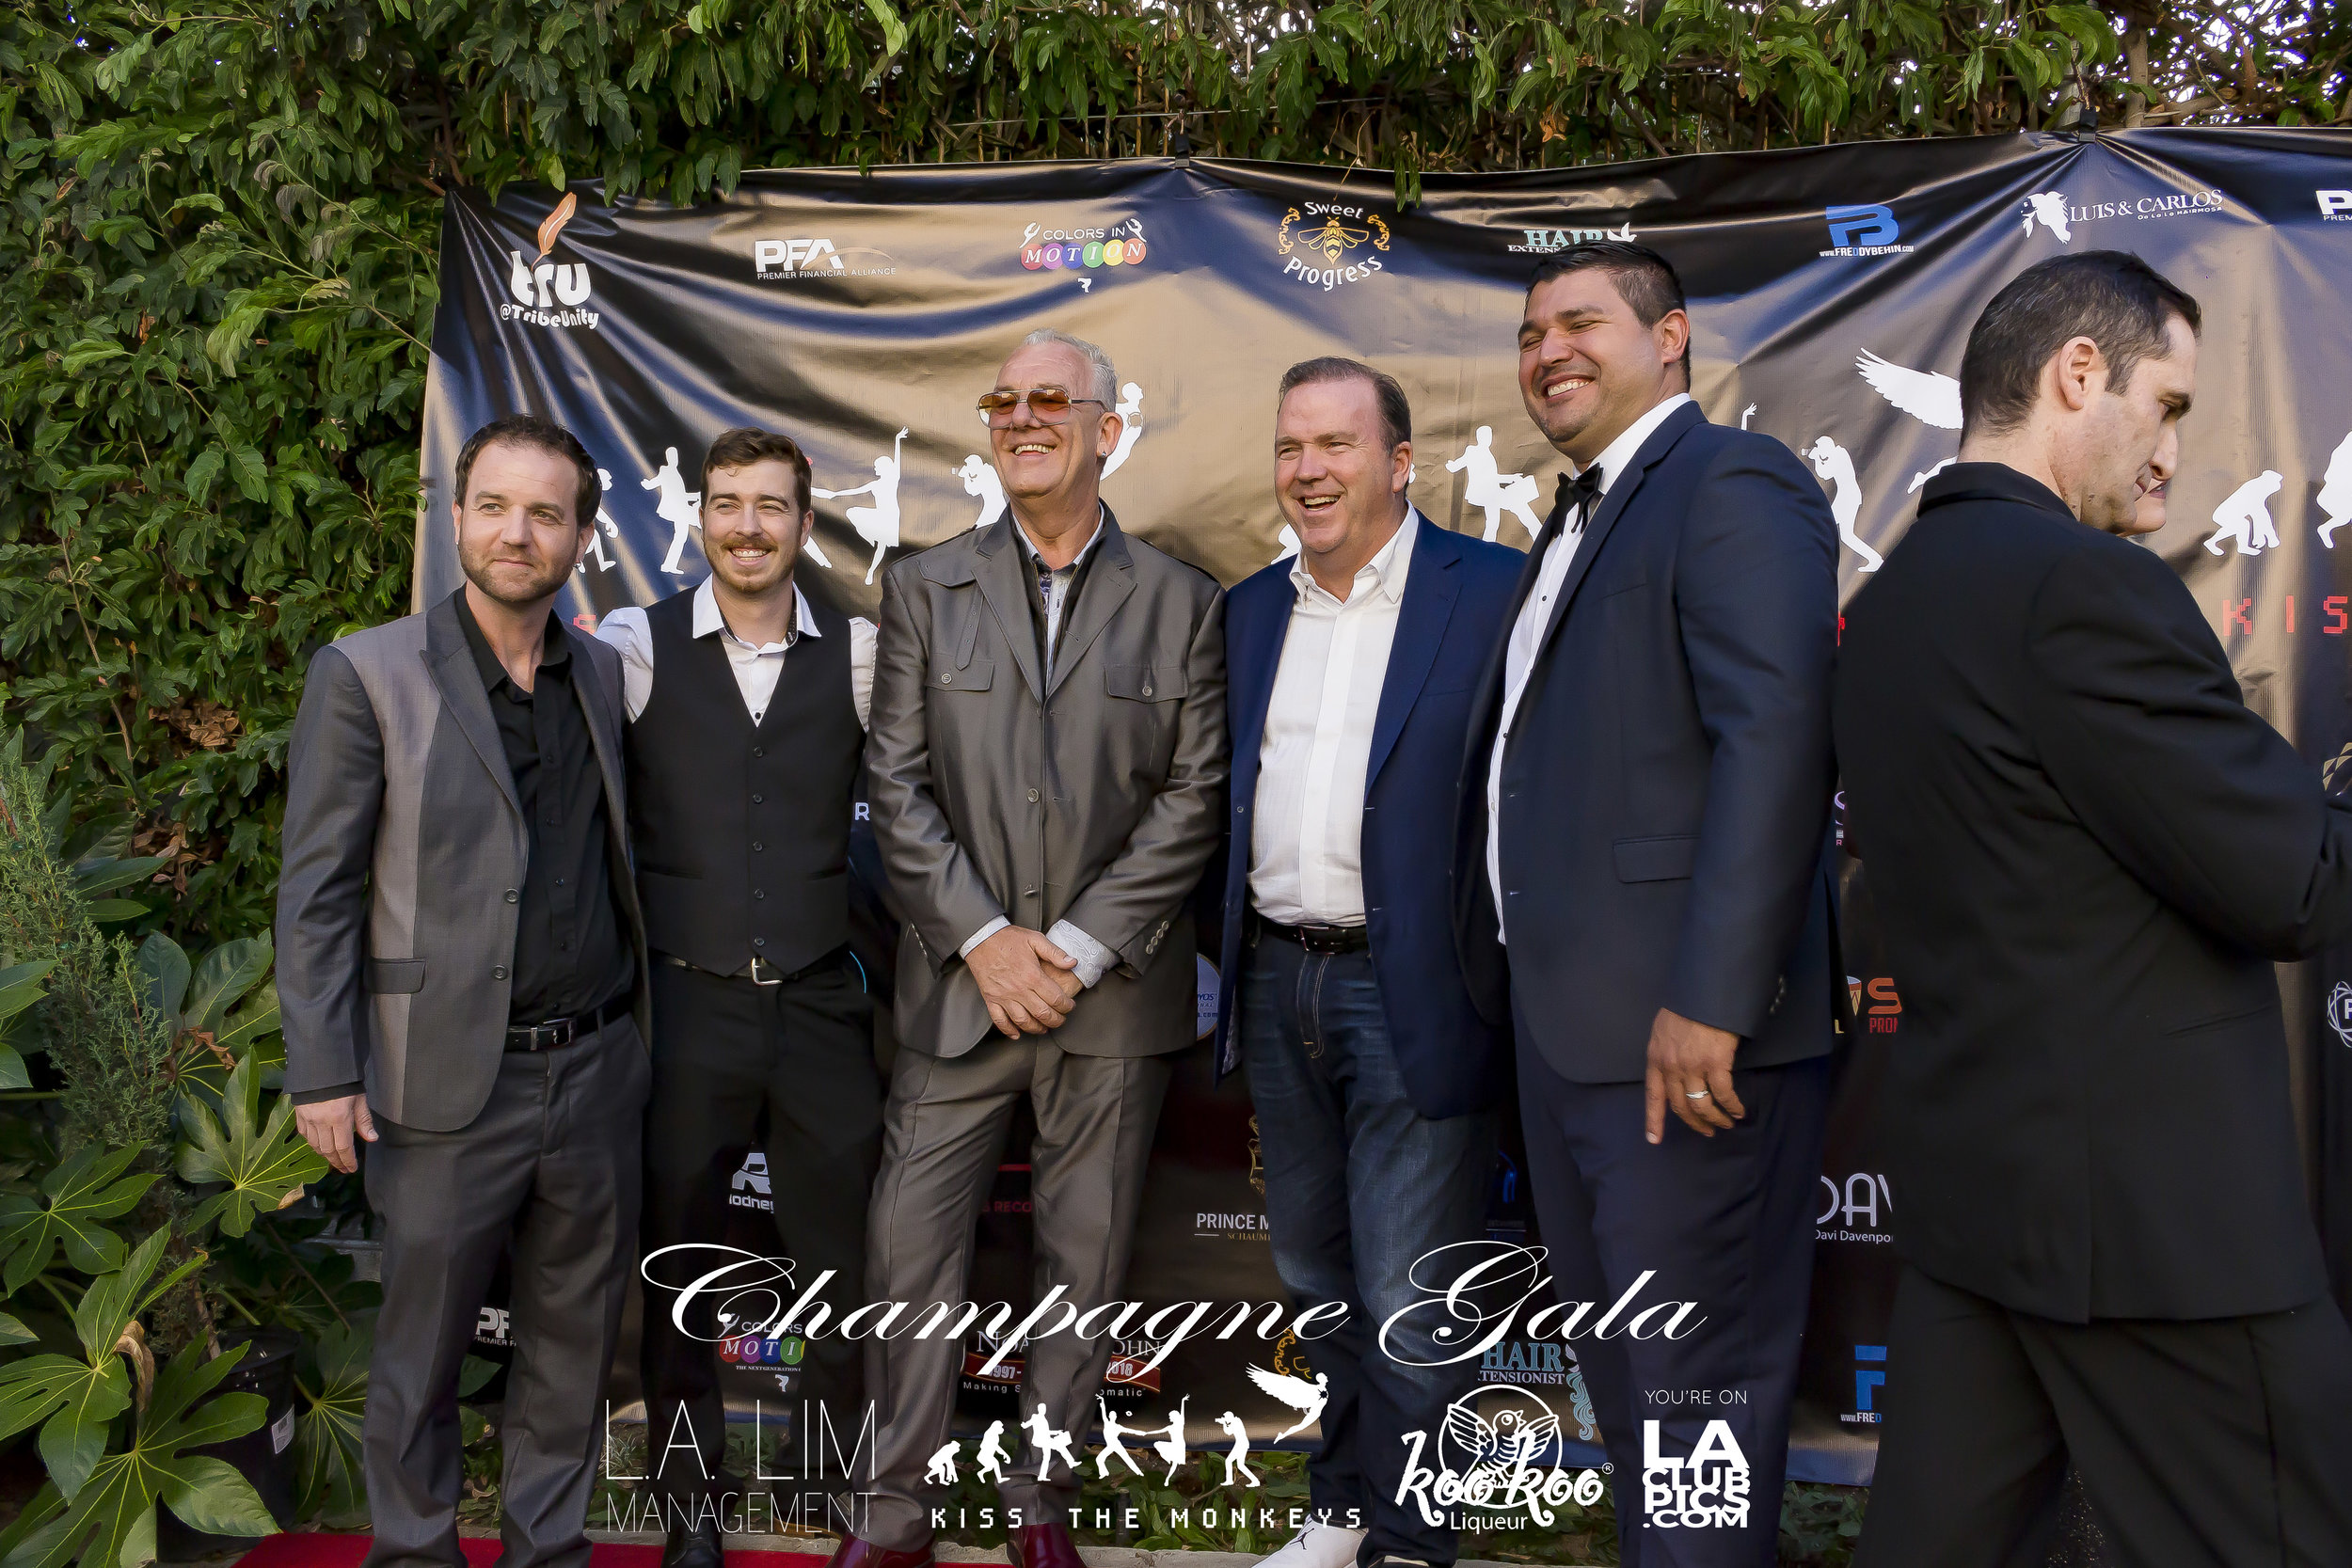 Kiss The Monkeys - Champagne Gala - 07-21-18_106.jpg